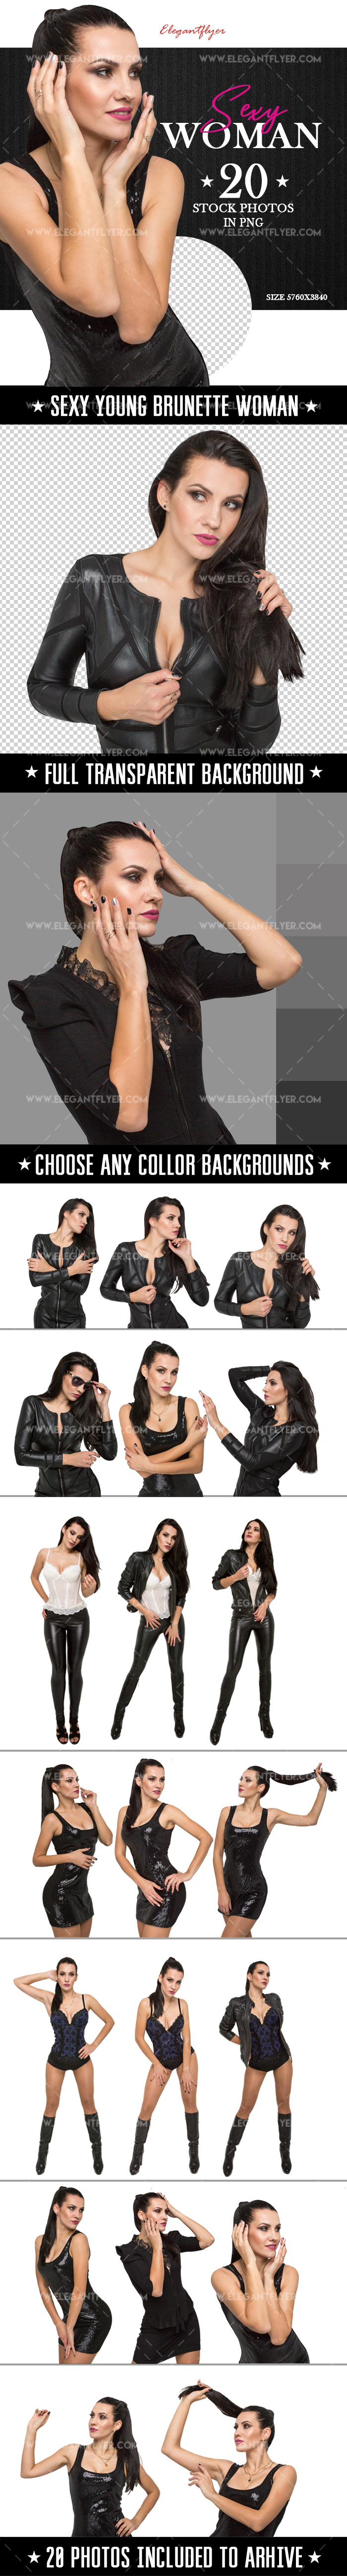 Sexy Brunette Woman Photo Bundle